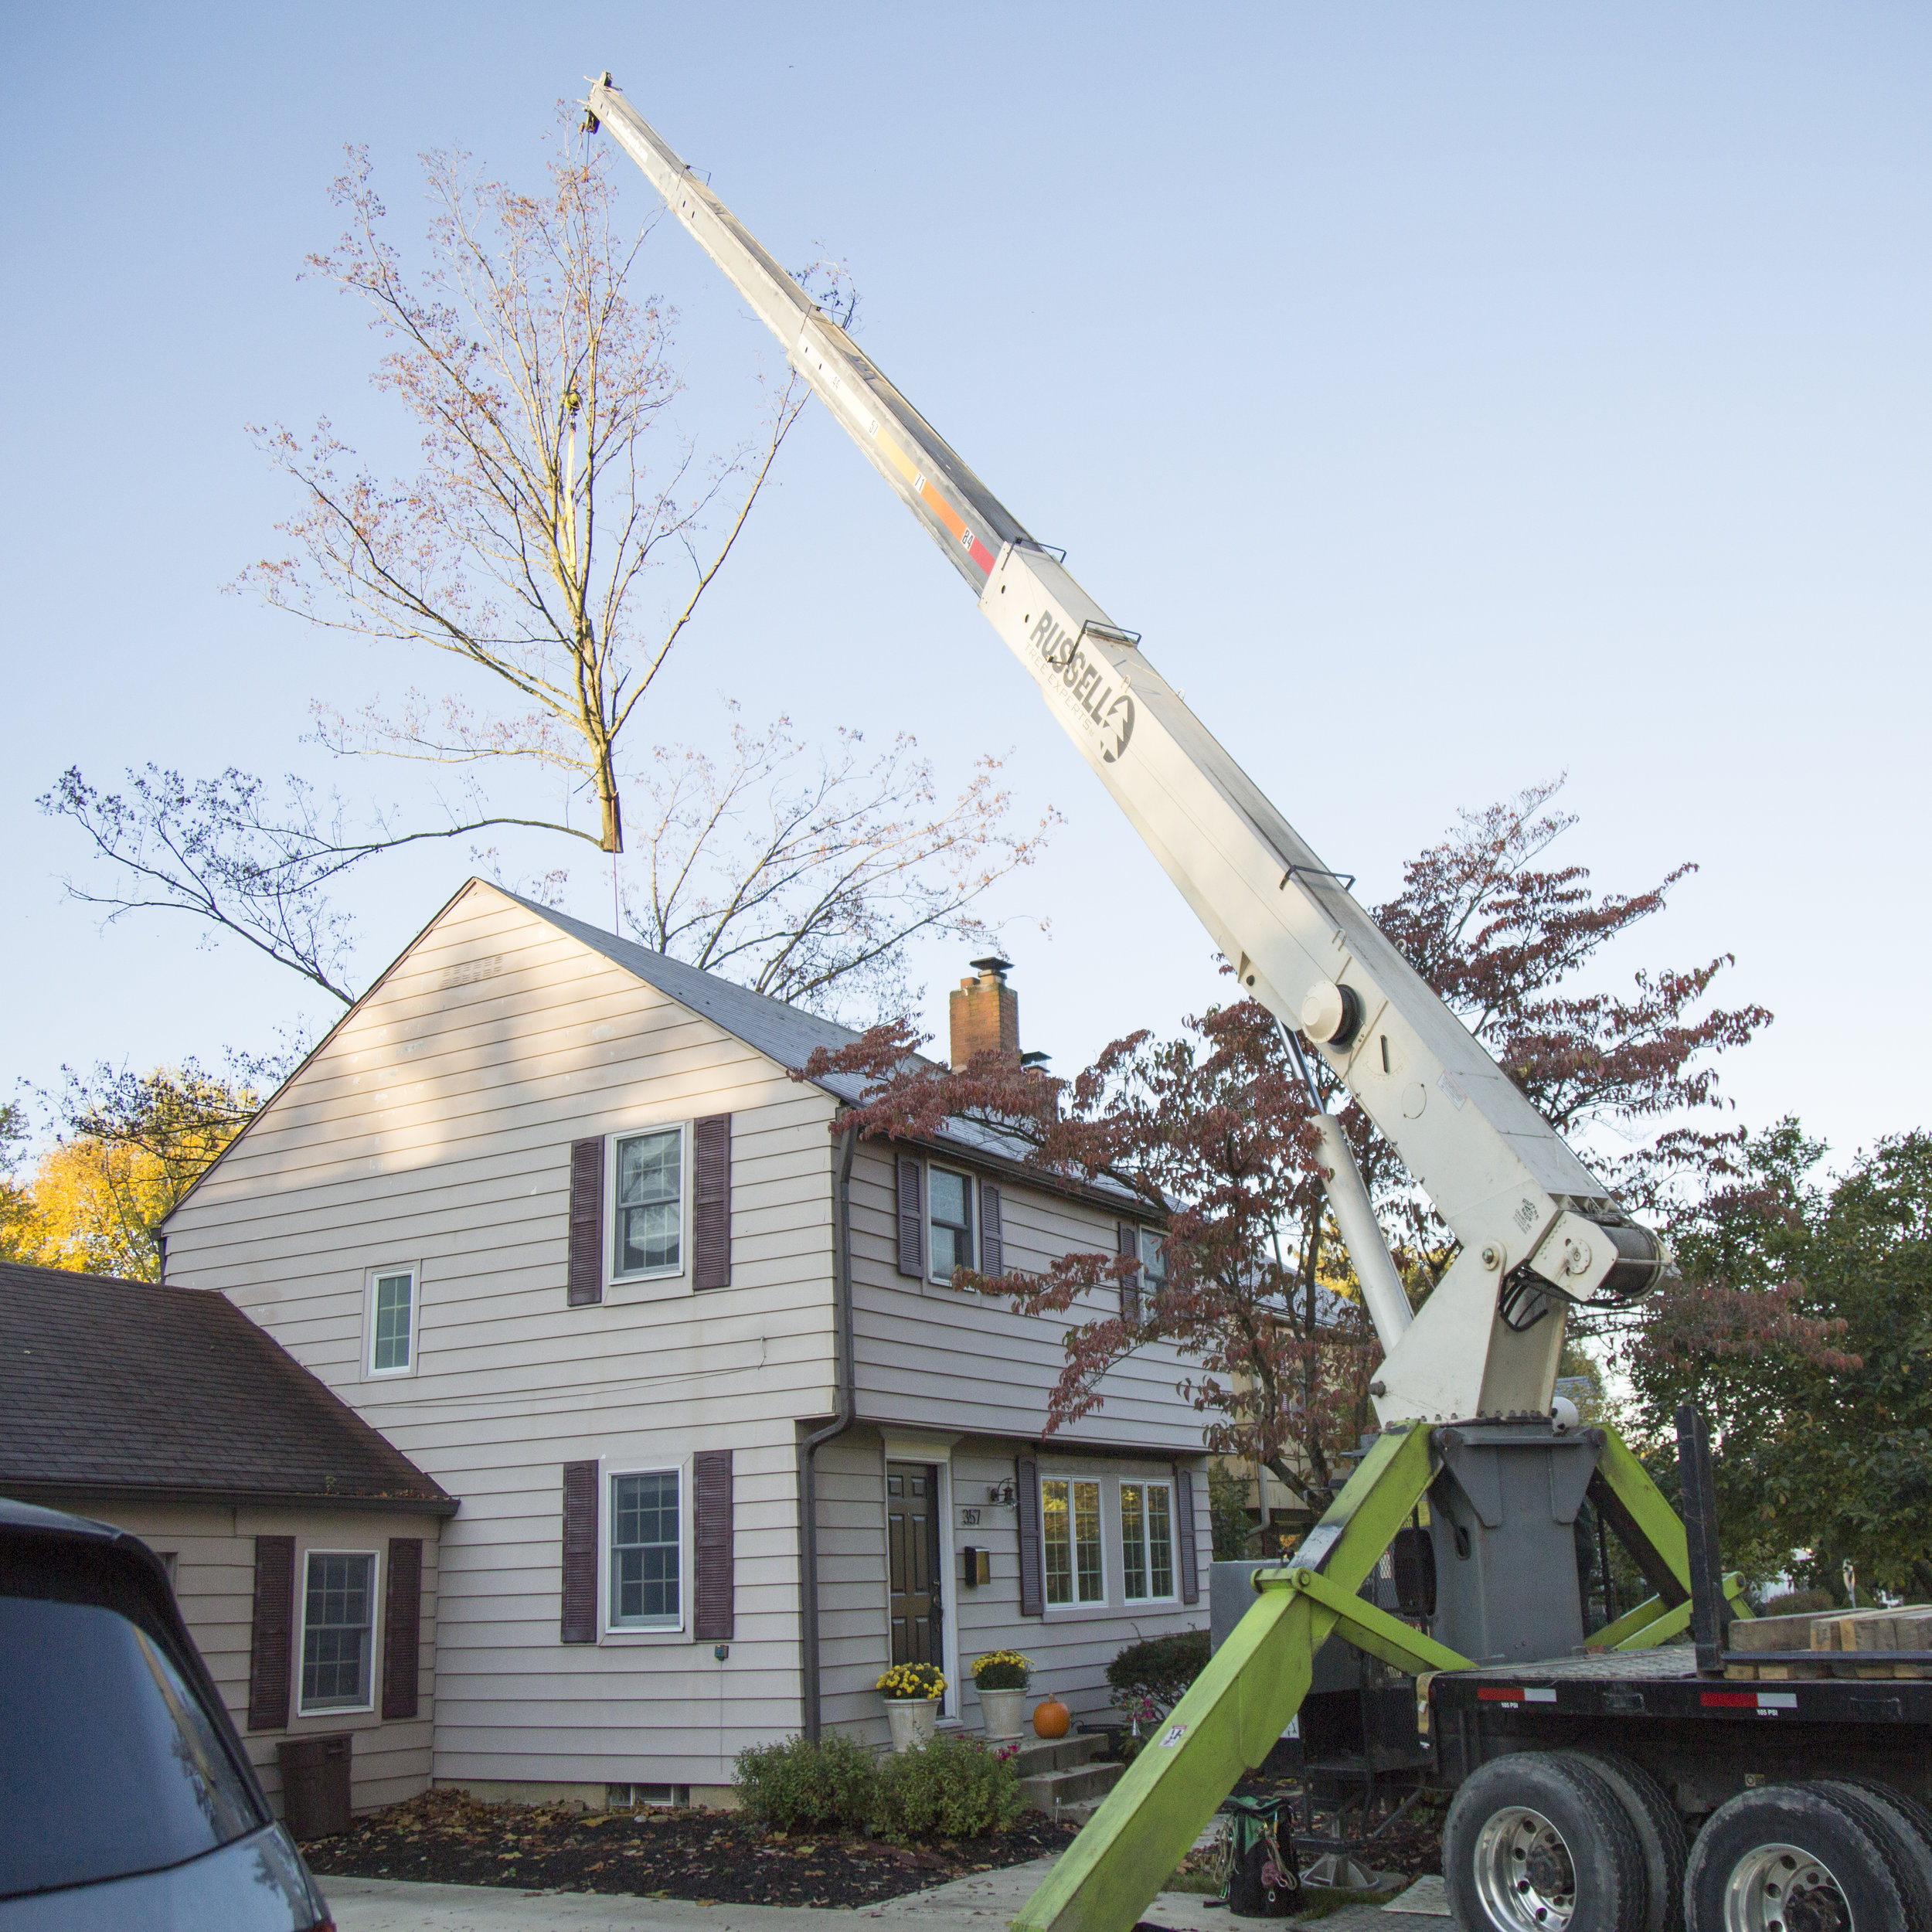 Cranes - When trees grow over sensitive pavement and structures, our company owned cranes and on staff licensed operators can rig and lift trees up and over obstacles, protecting the valuable property beneath.